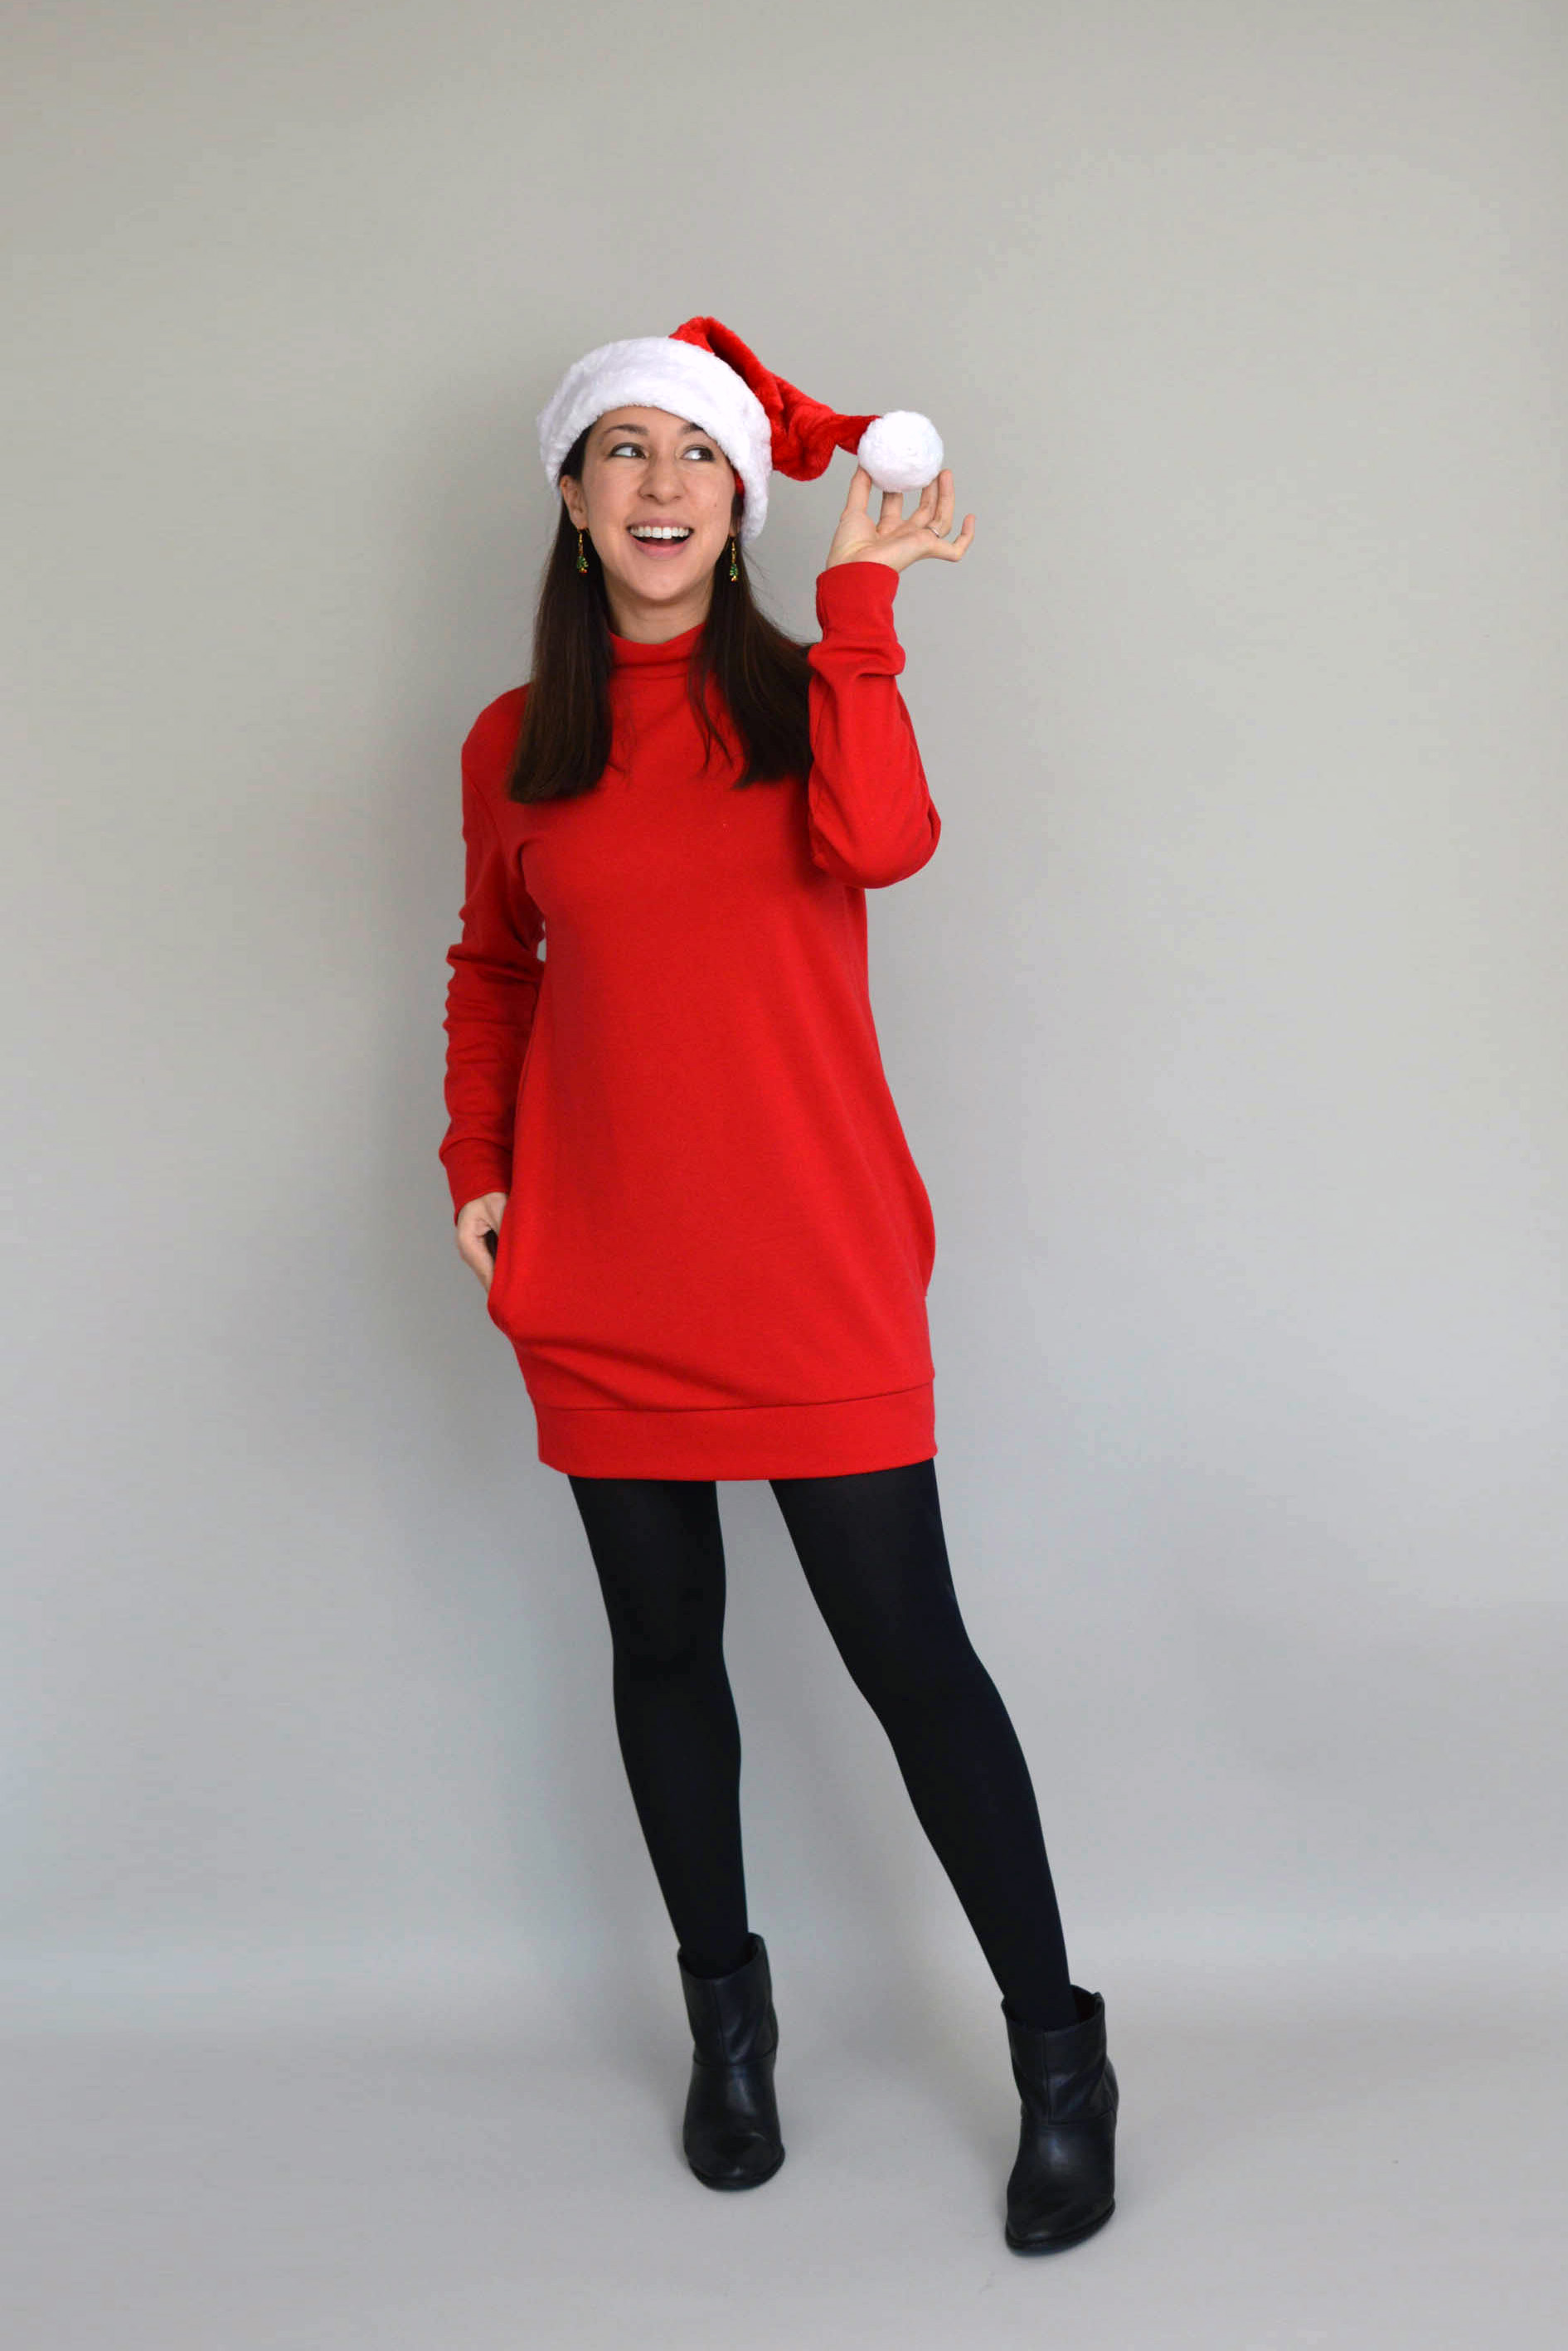 Red Southbank Sweater dress with Santa hat and black boots